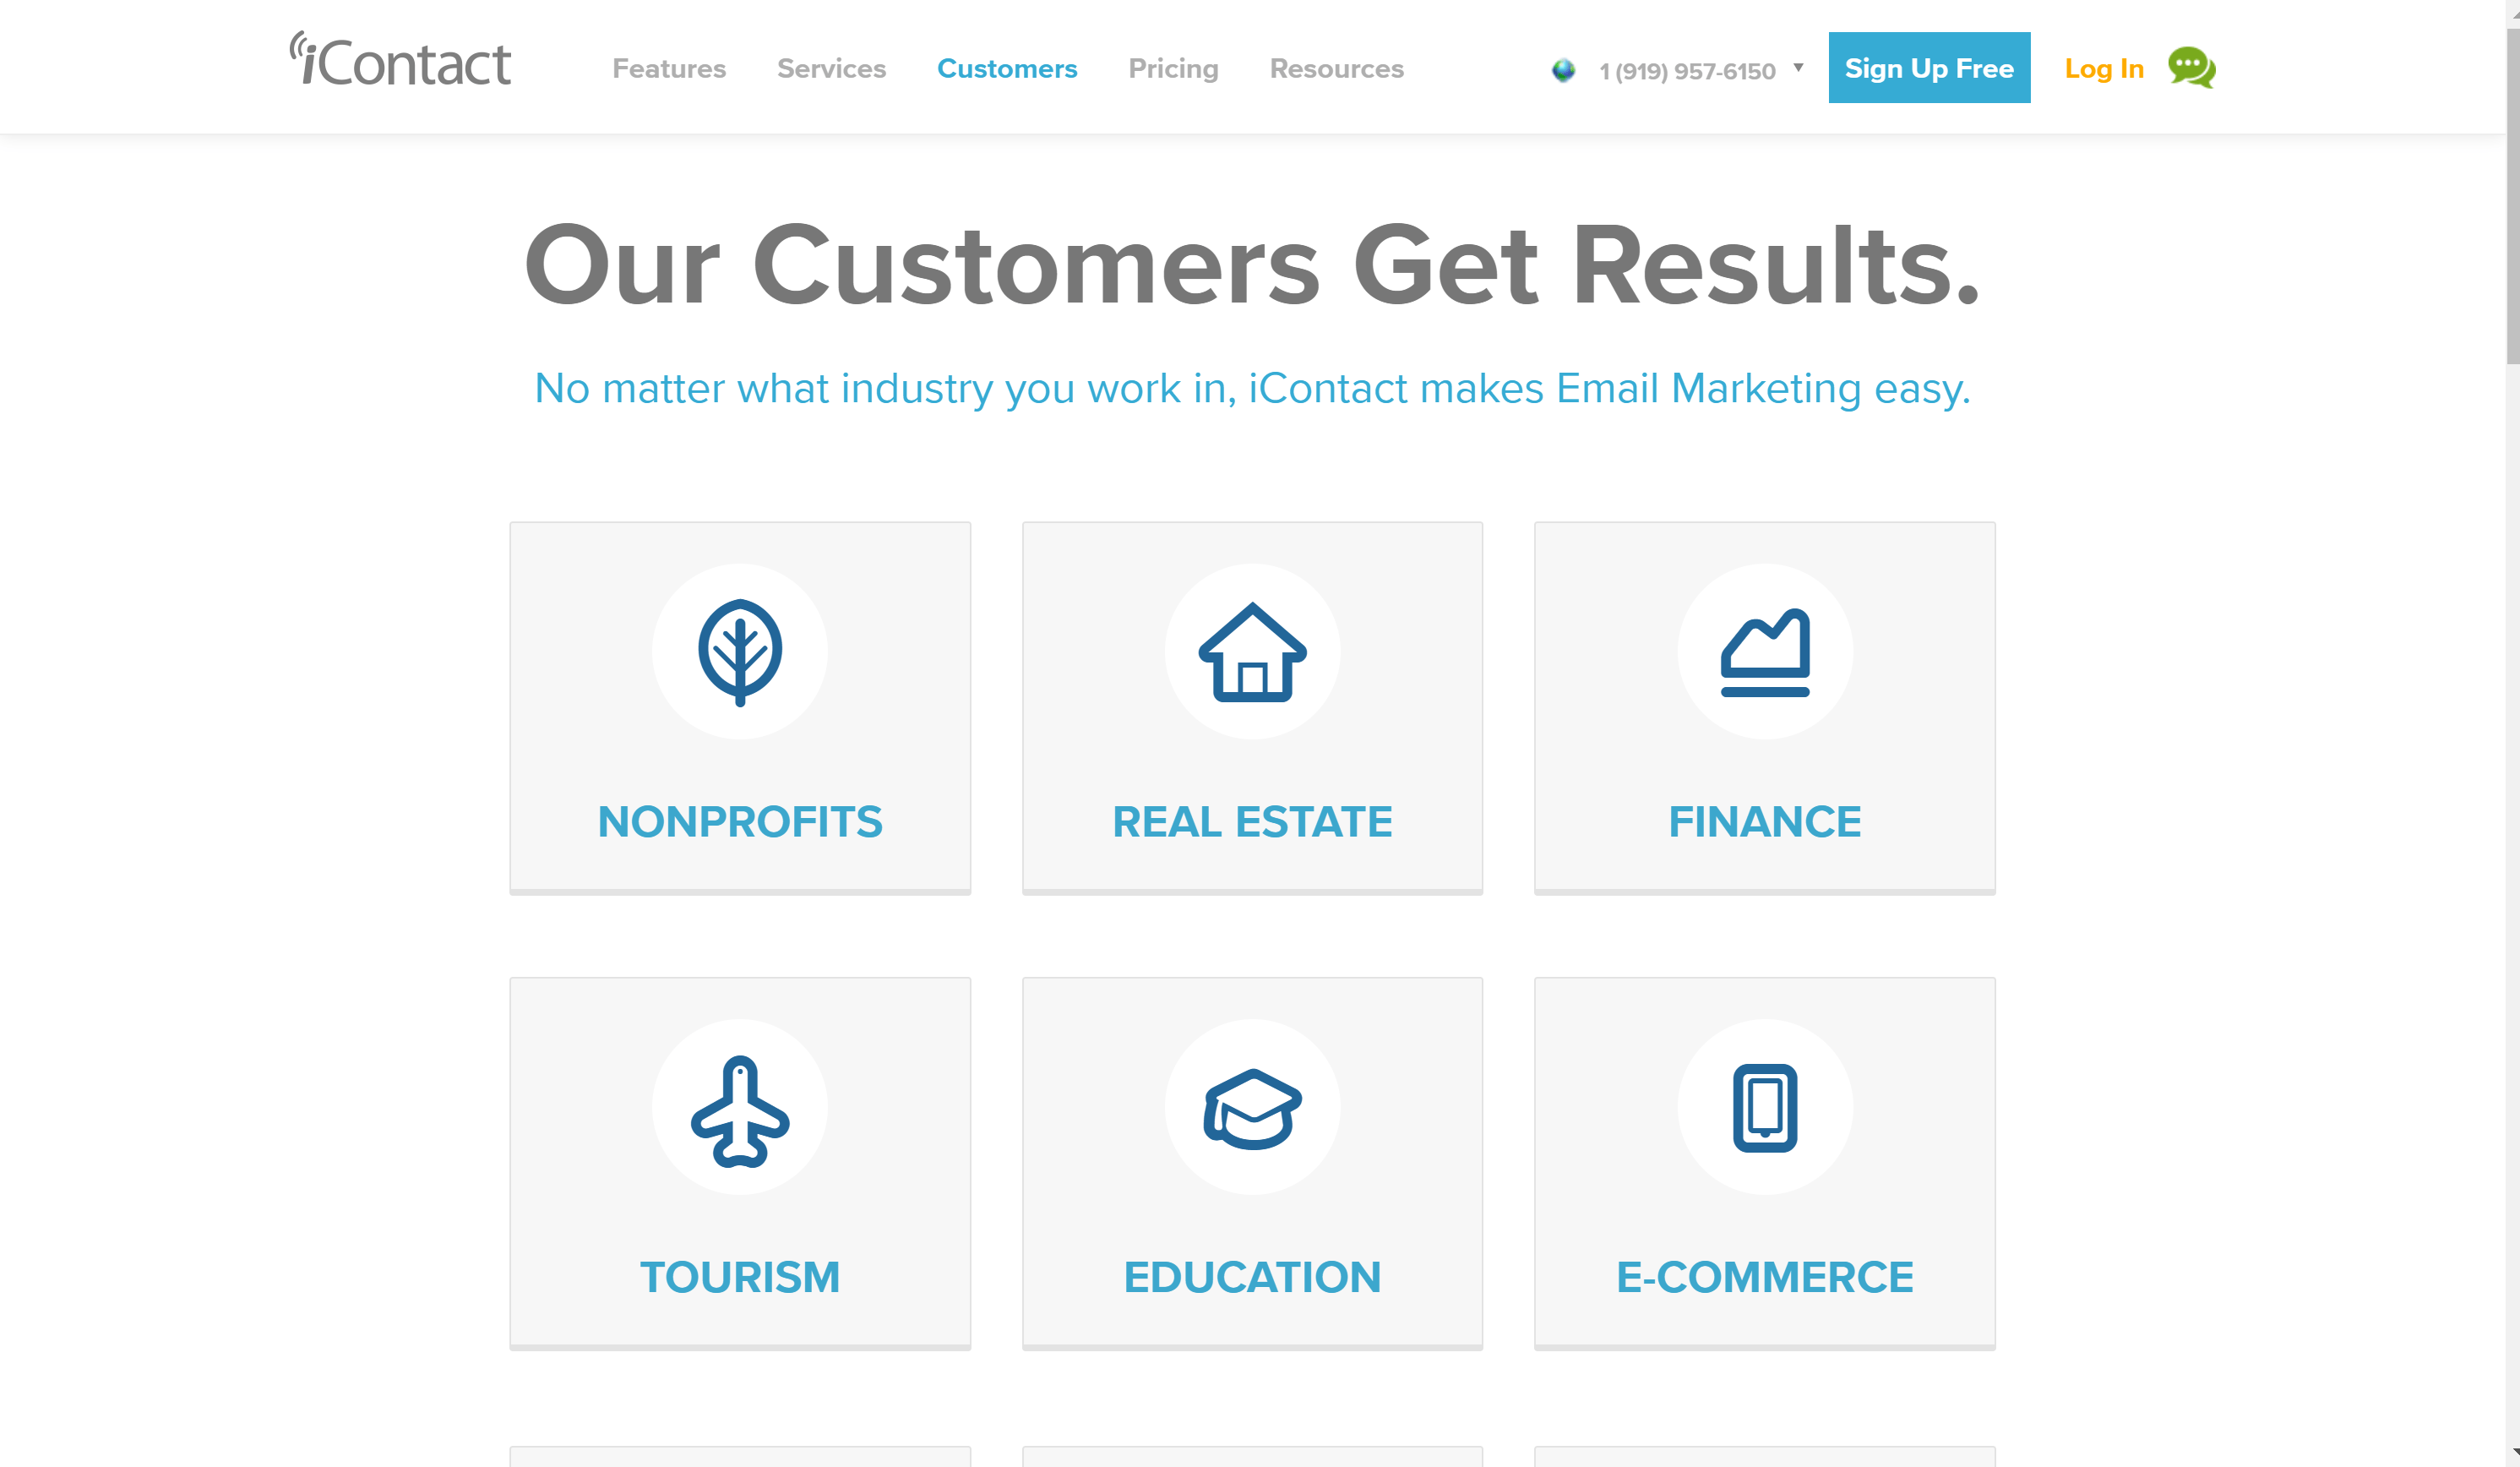 iContact Customers Get Real Results